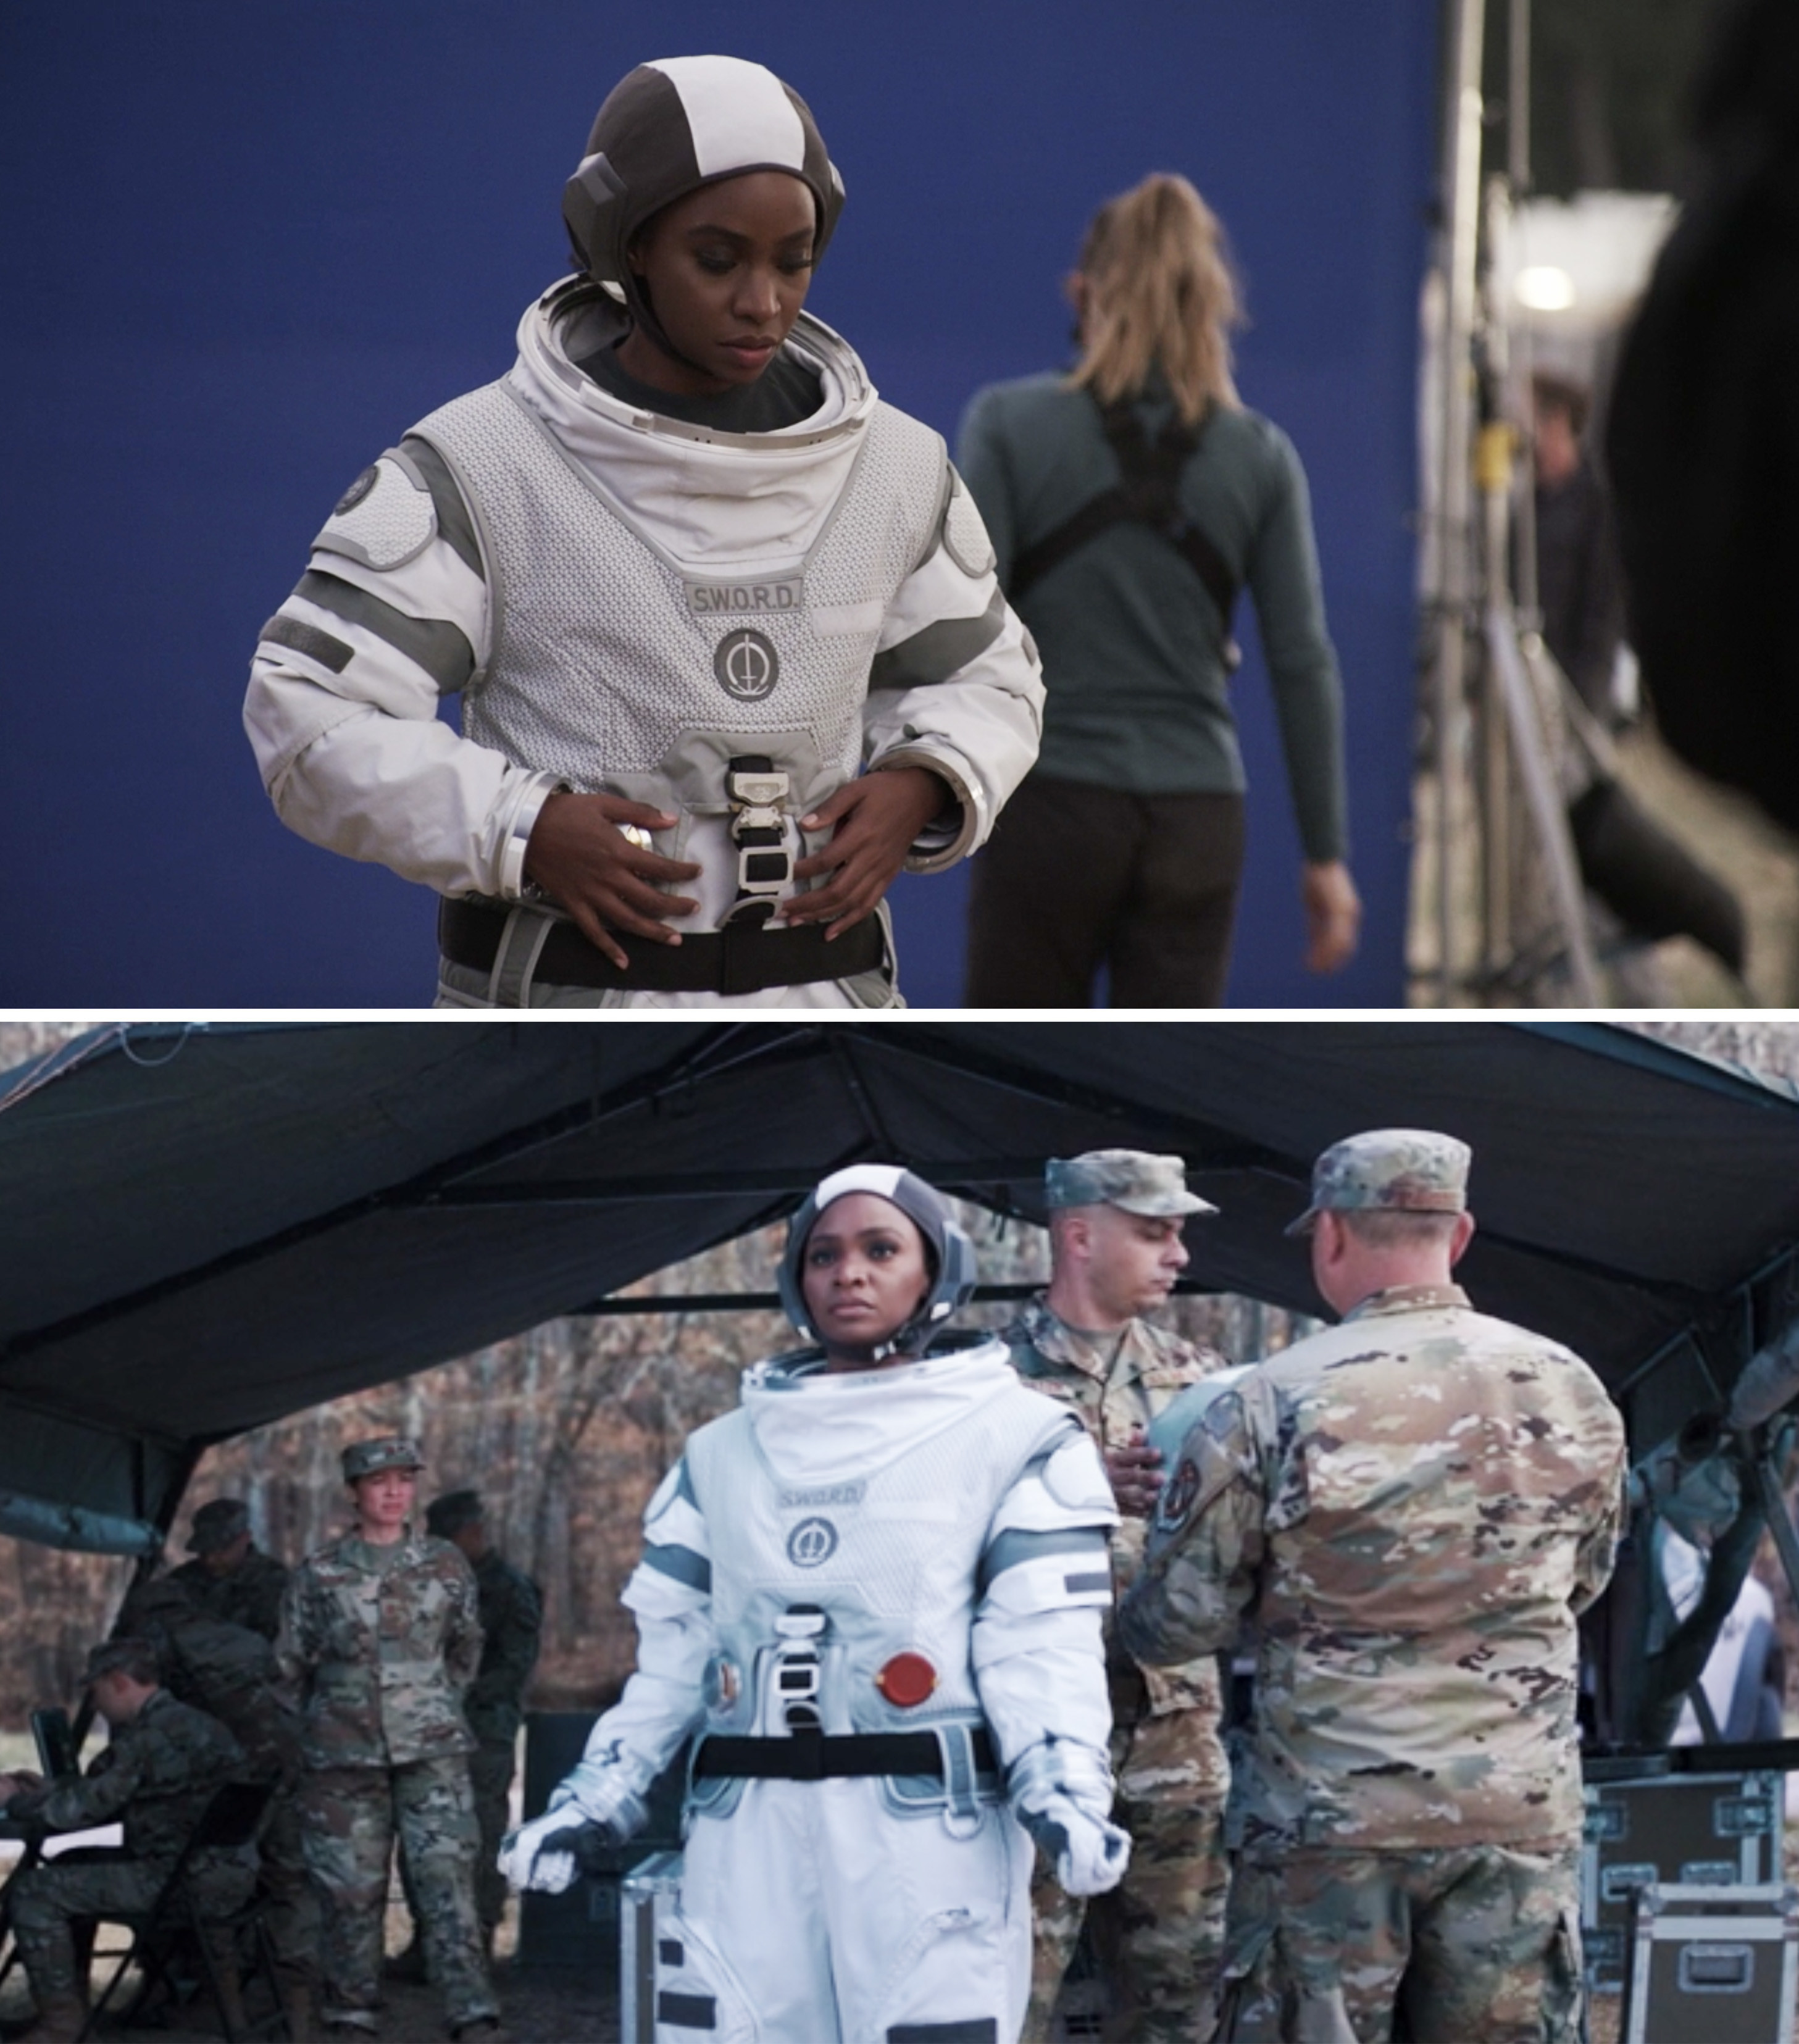 Teyonah Parris as Monica wearing a space suit and filming against a blue screen